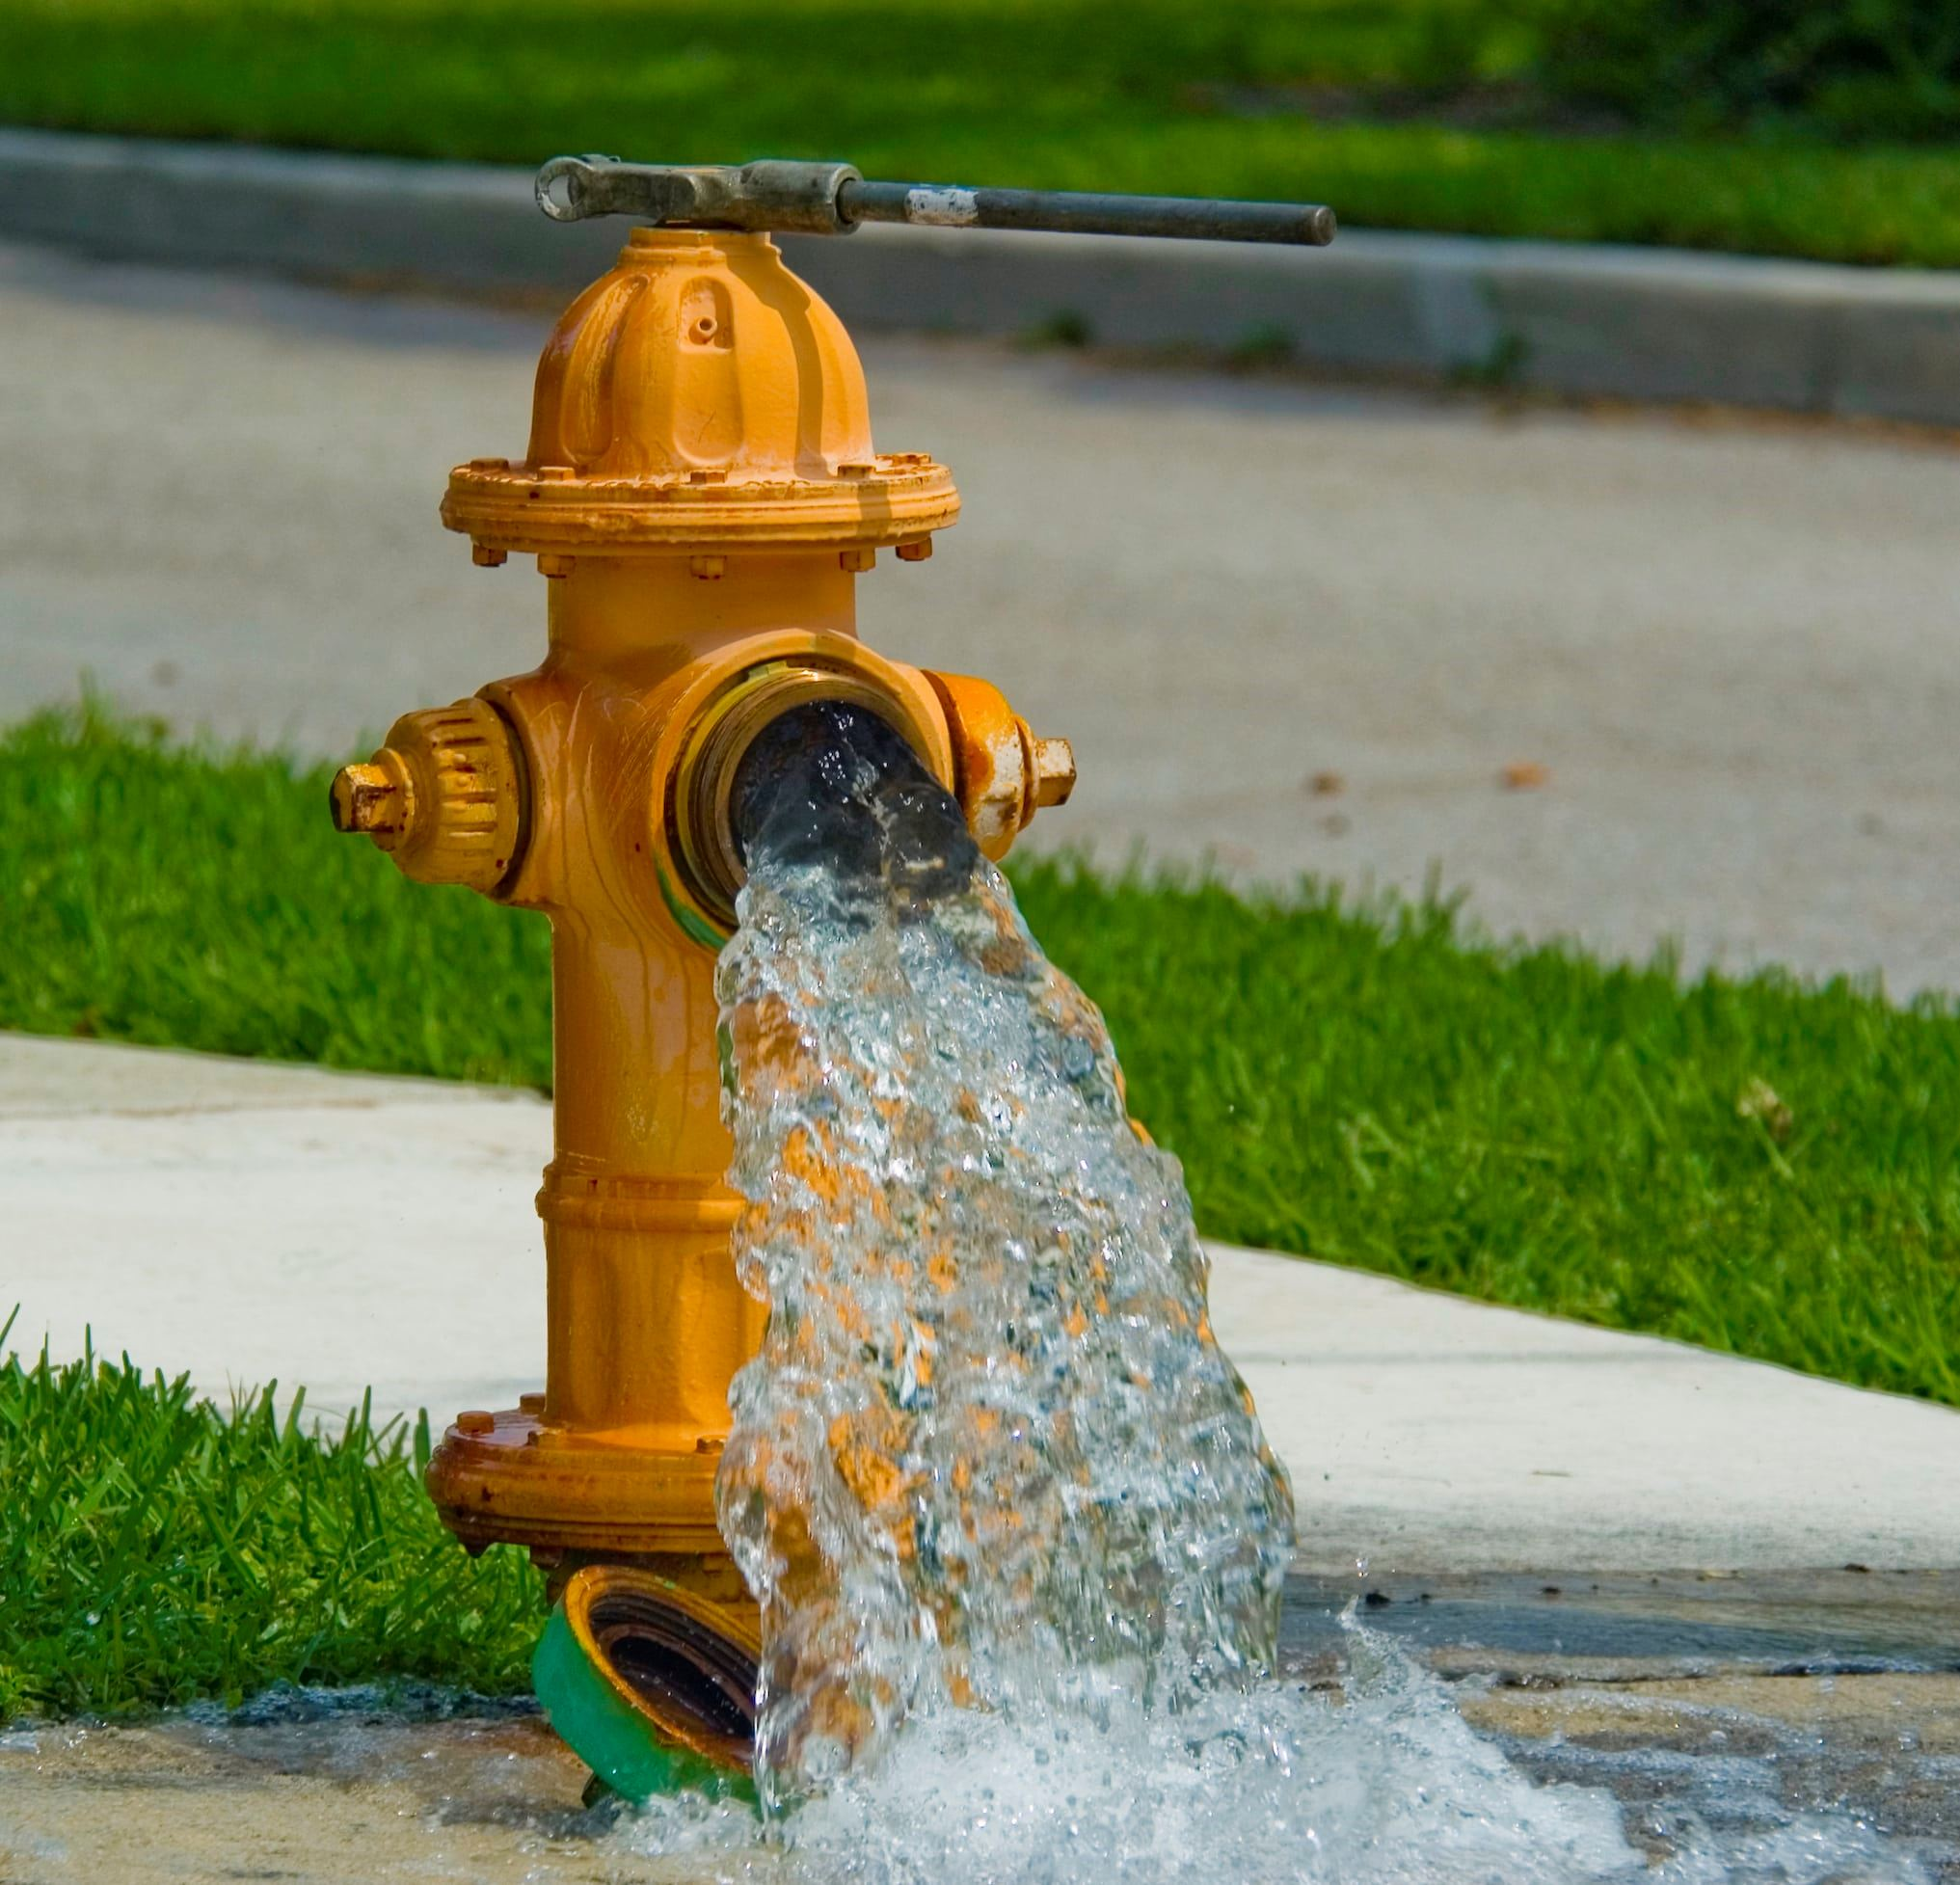 fire-hydrant-flowing